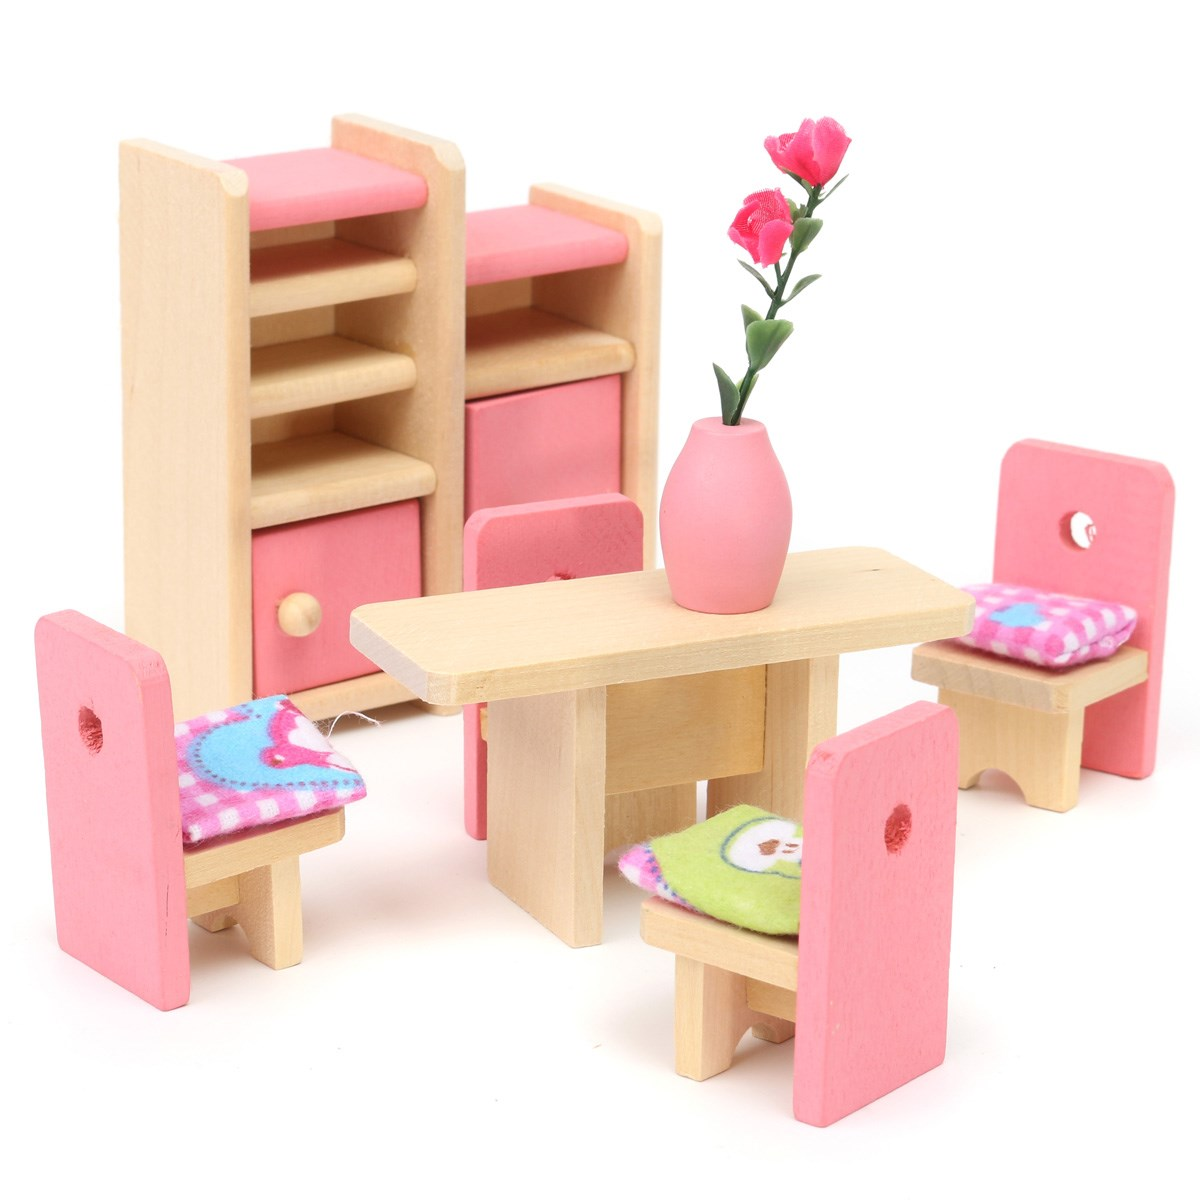 mini furniture sets. Wooden Delicate Dollhouse Furniture Toys Miniature For Kids Children Pretend Play 6 Room Set/4 Dolls Toys-in From \u0026 Hobbies On Mini Sets A